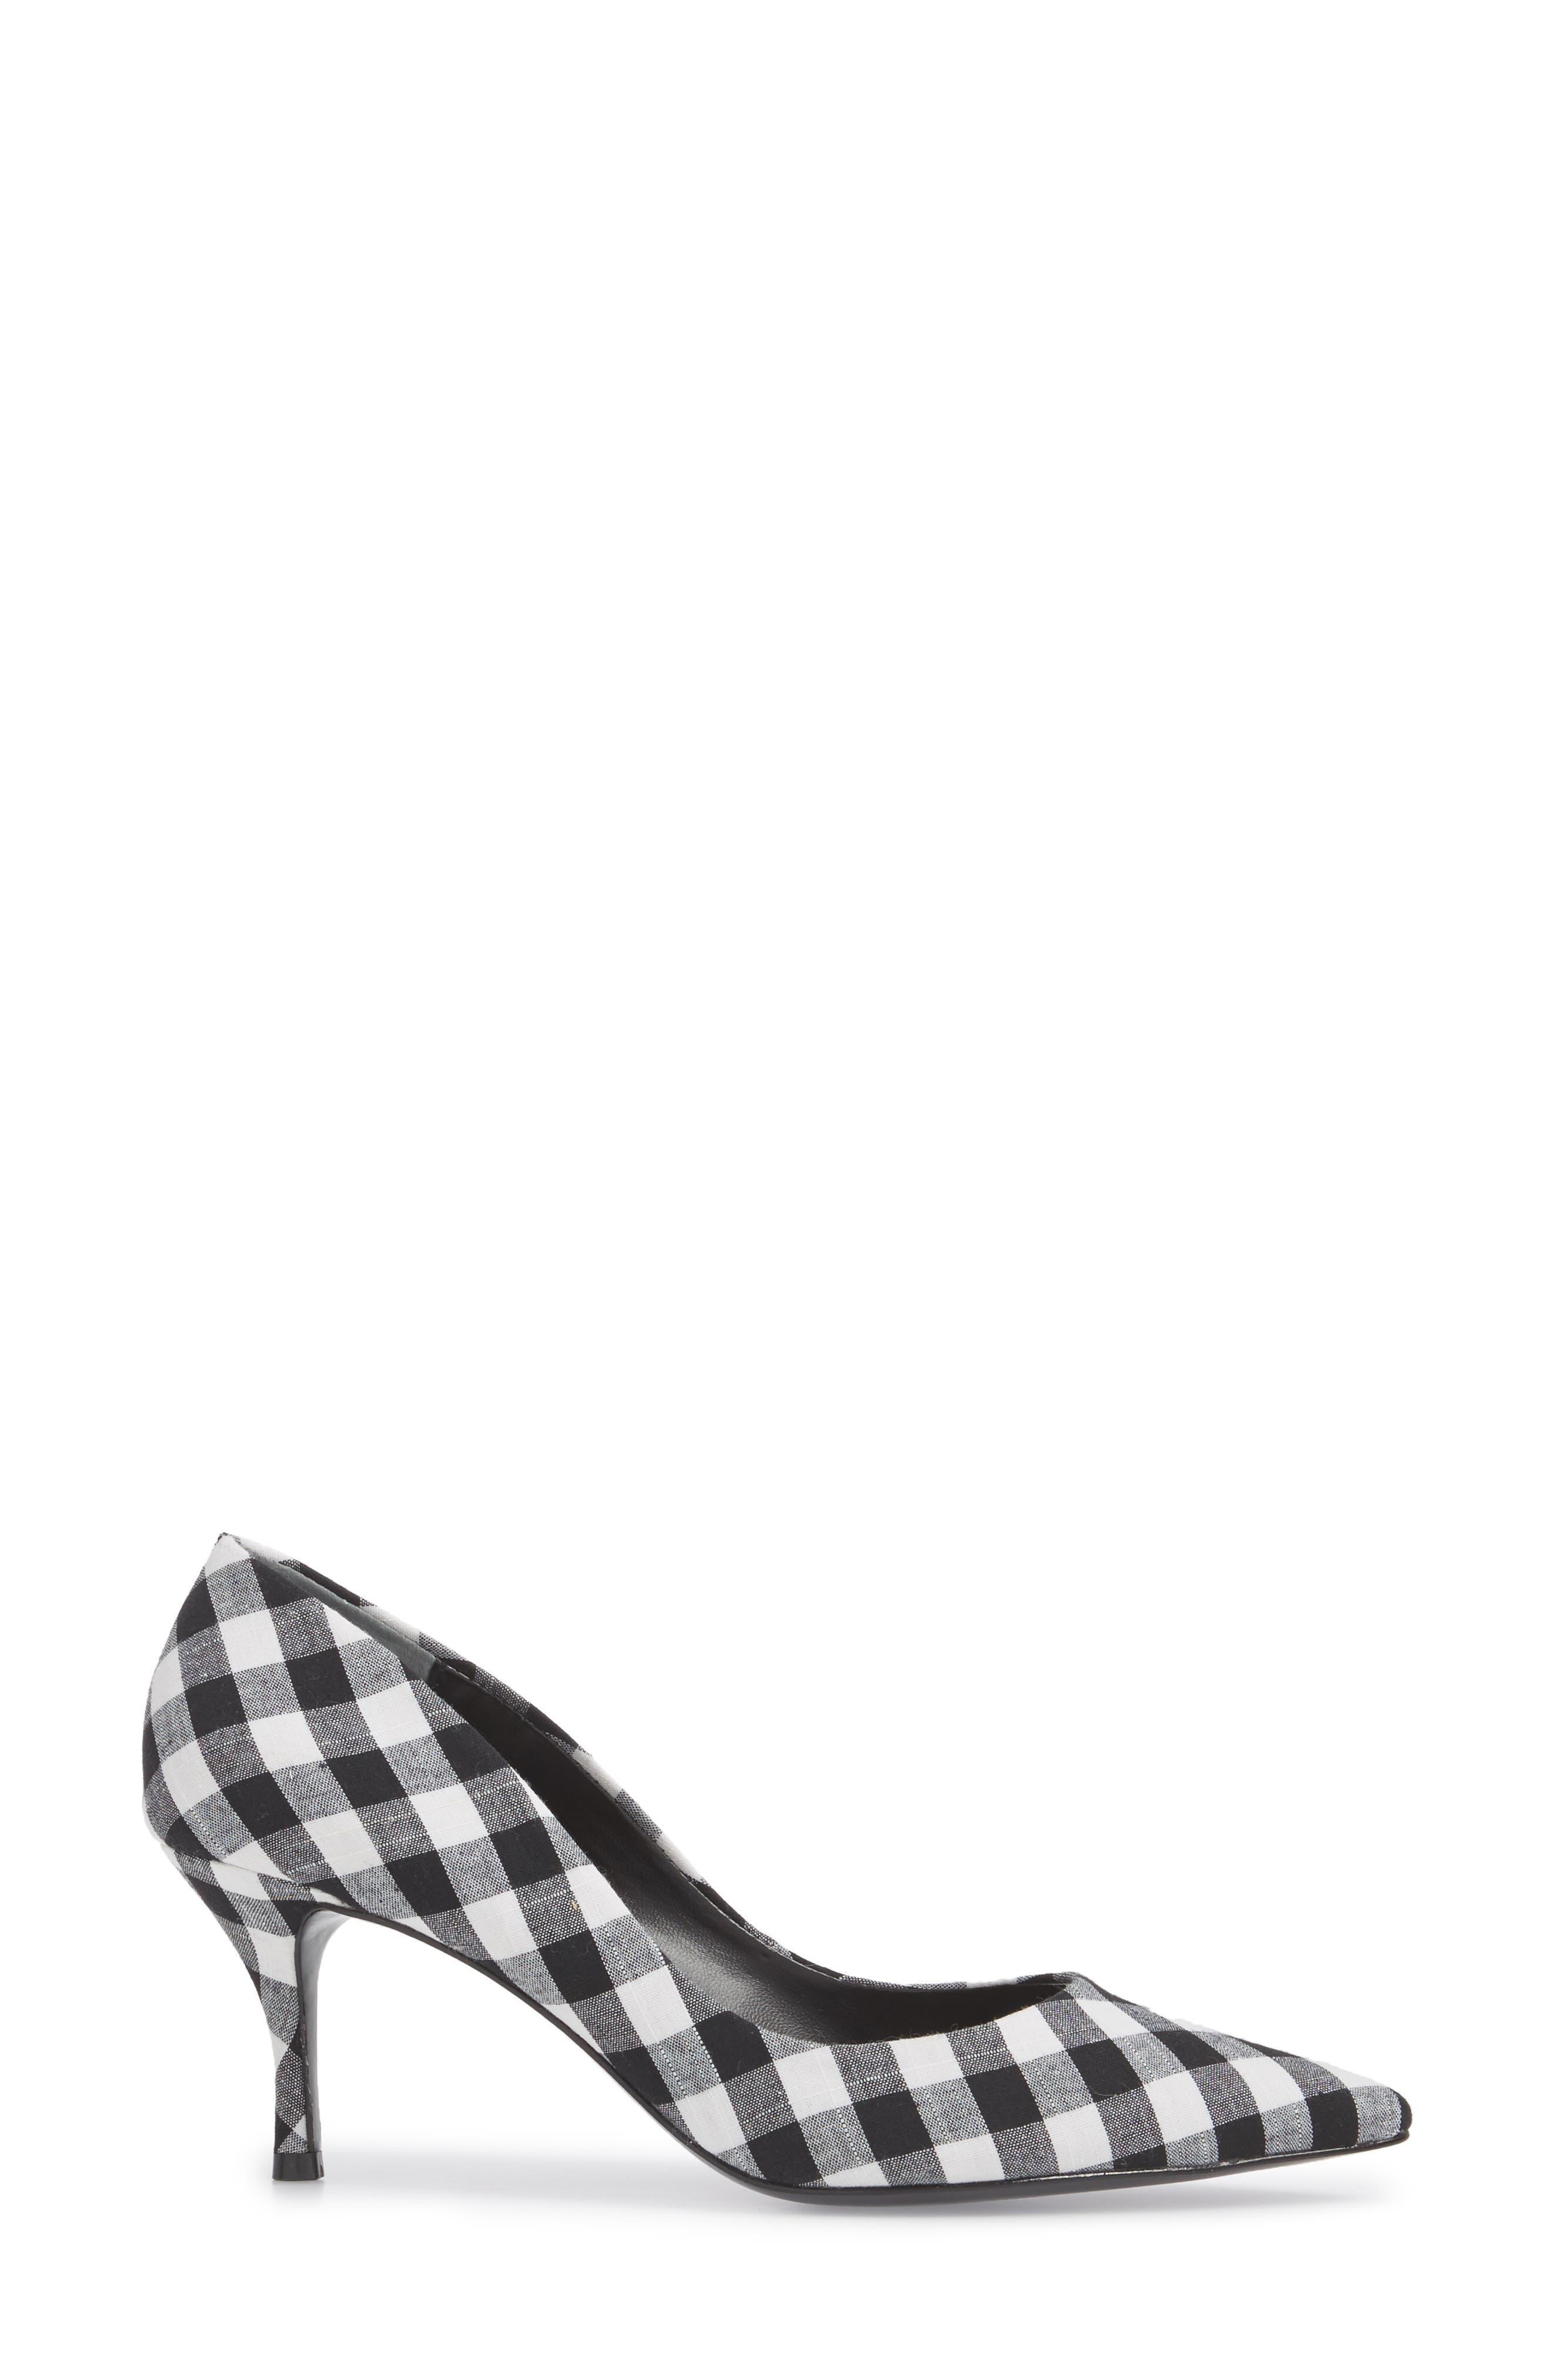 Addie Pump,                             Alternate thumbnail 3, color,                             BLACK/ WHITE GINGHAM FABRIC